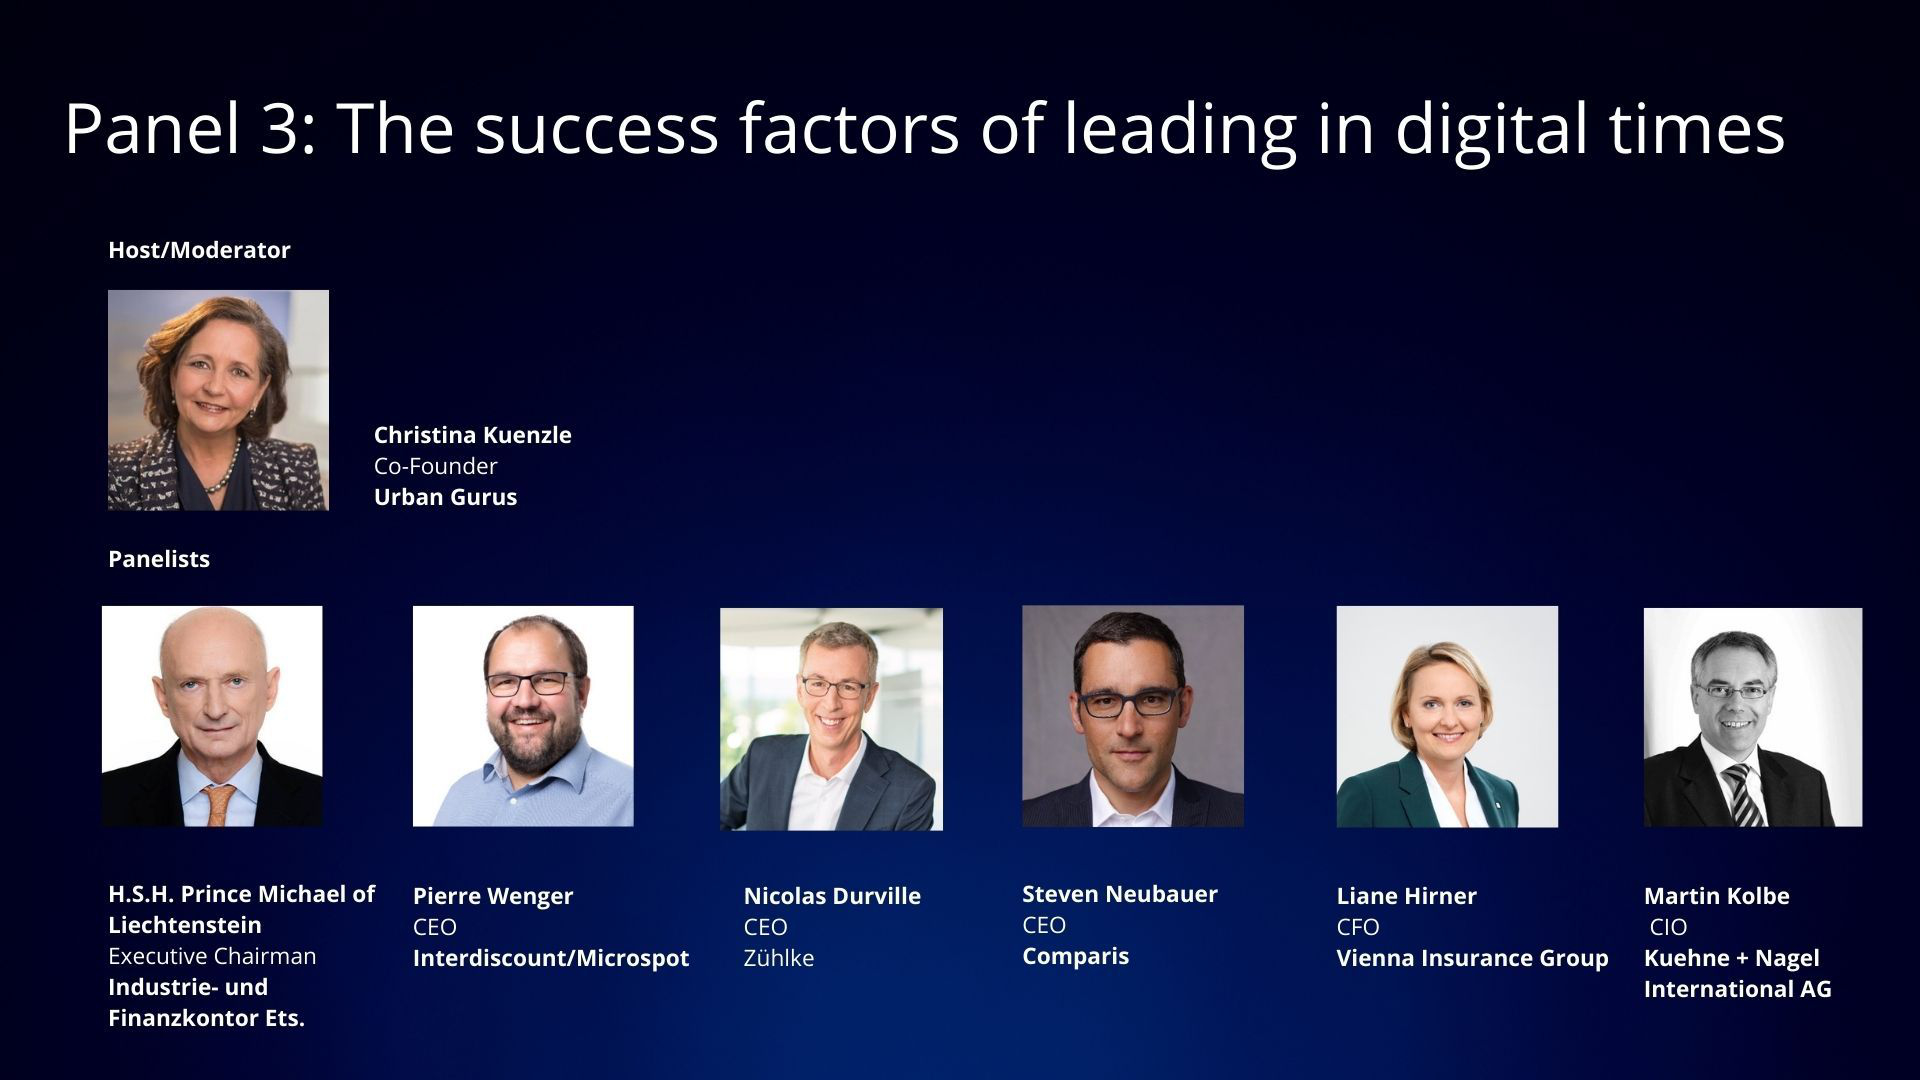 The success factors of leading in digital times